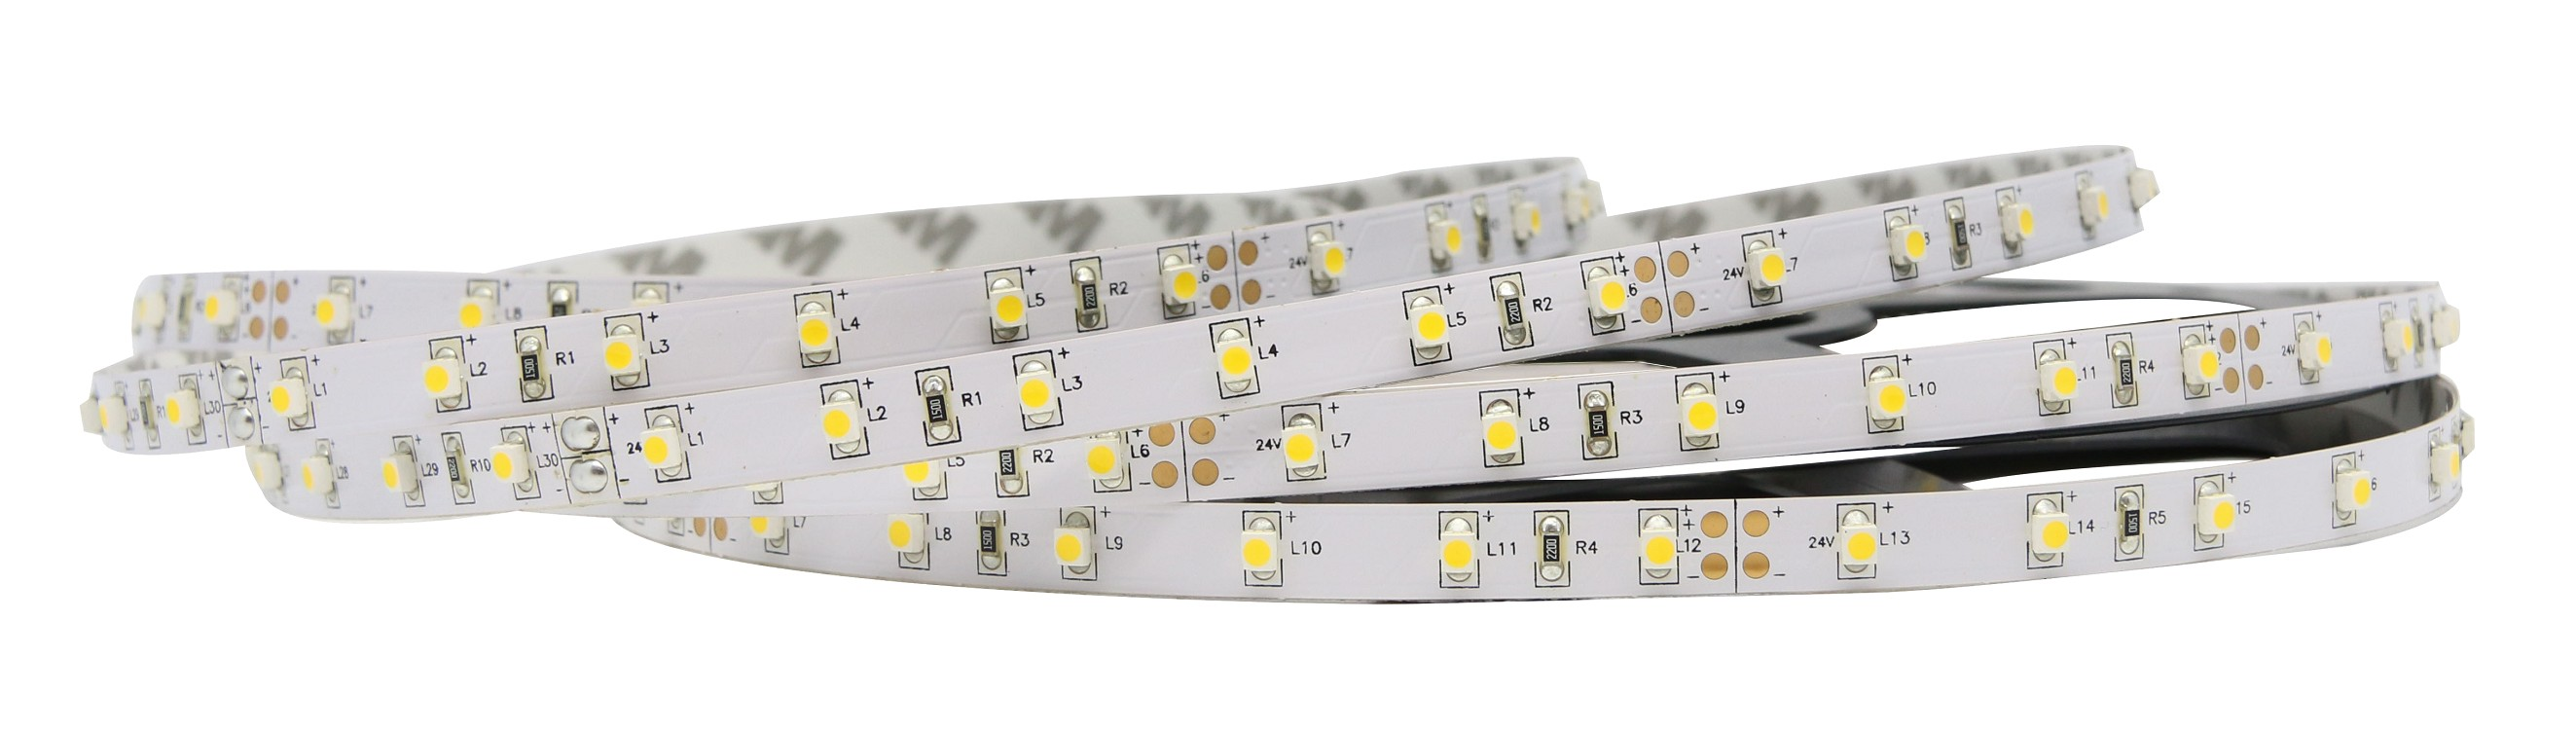 LED Striplight S241-High-Performance-24V-4.8W